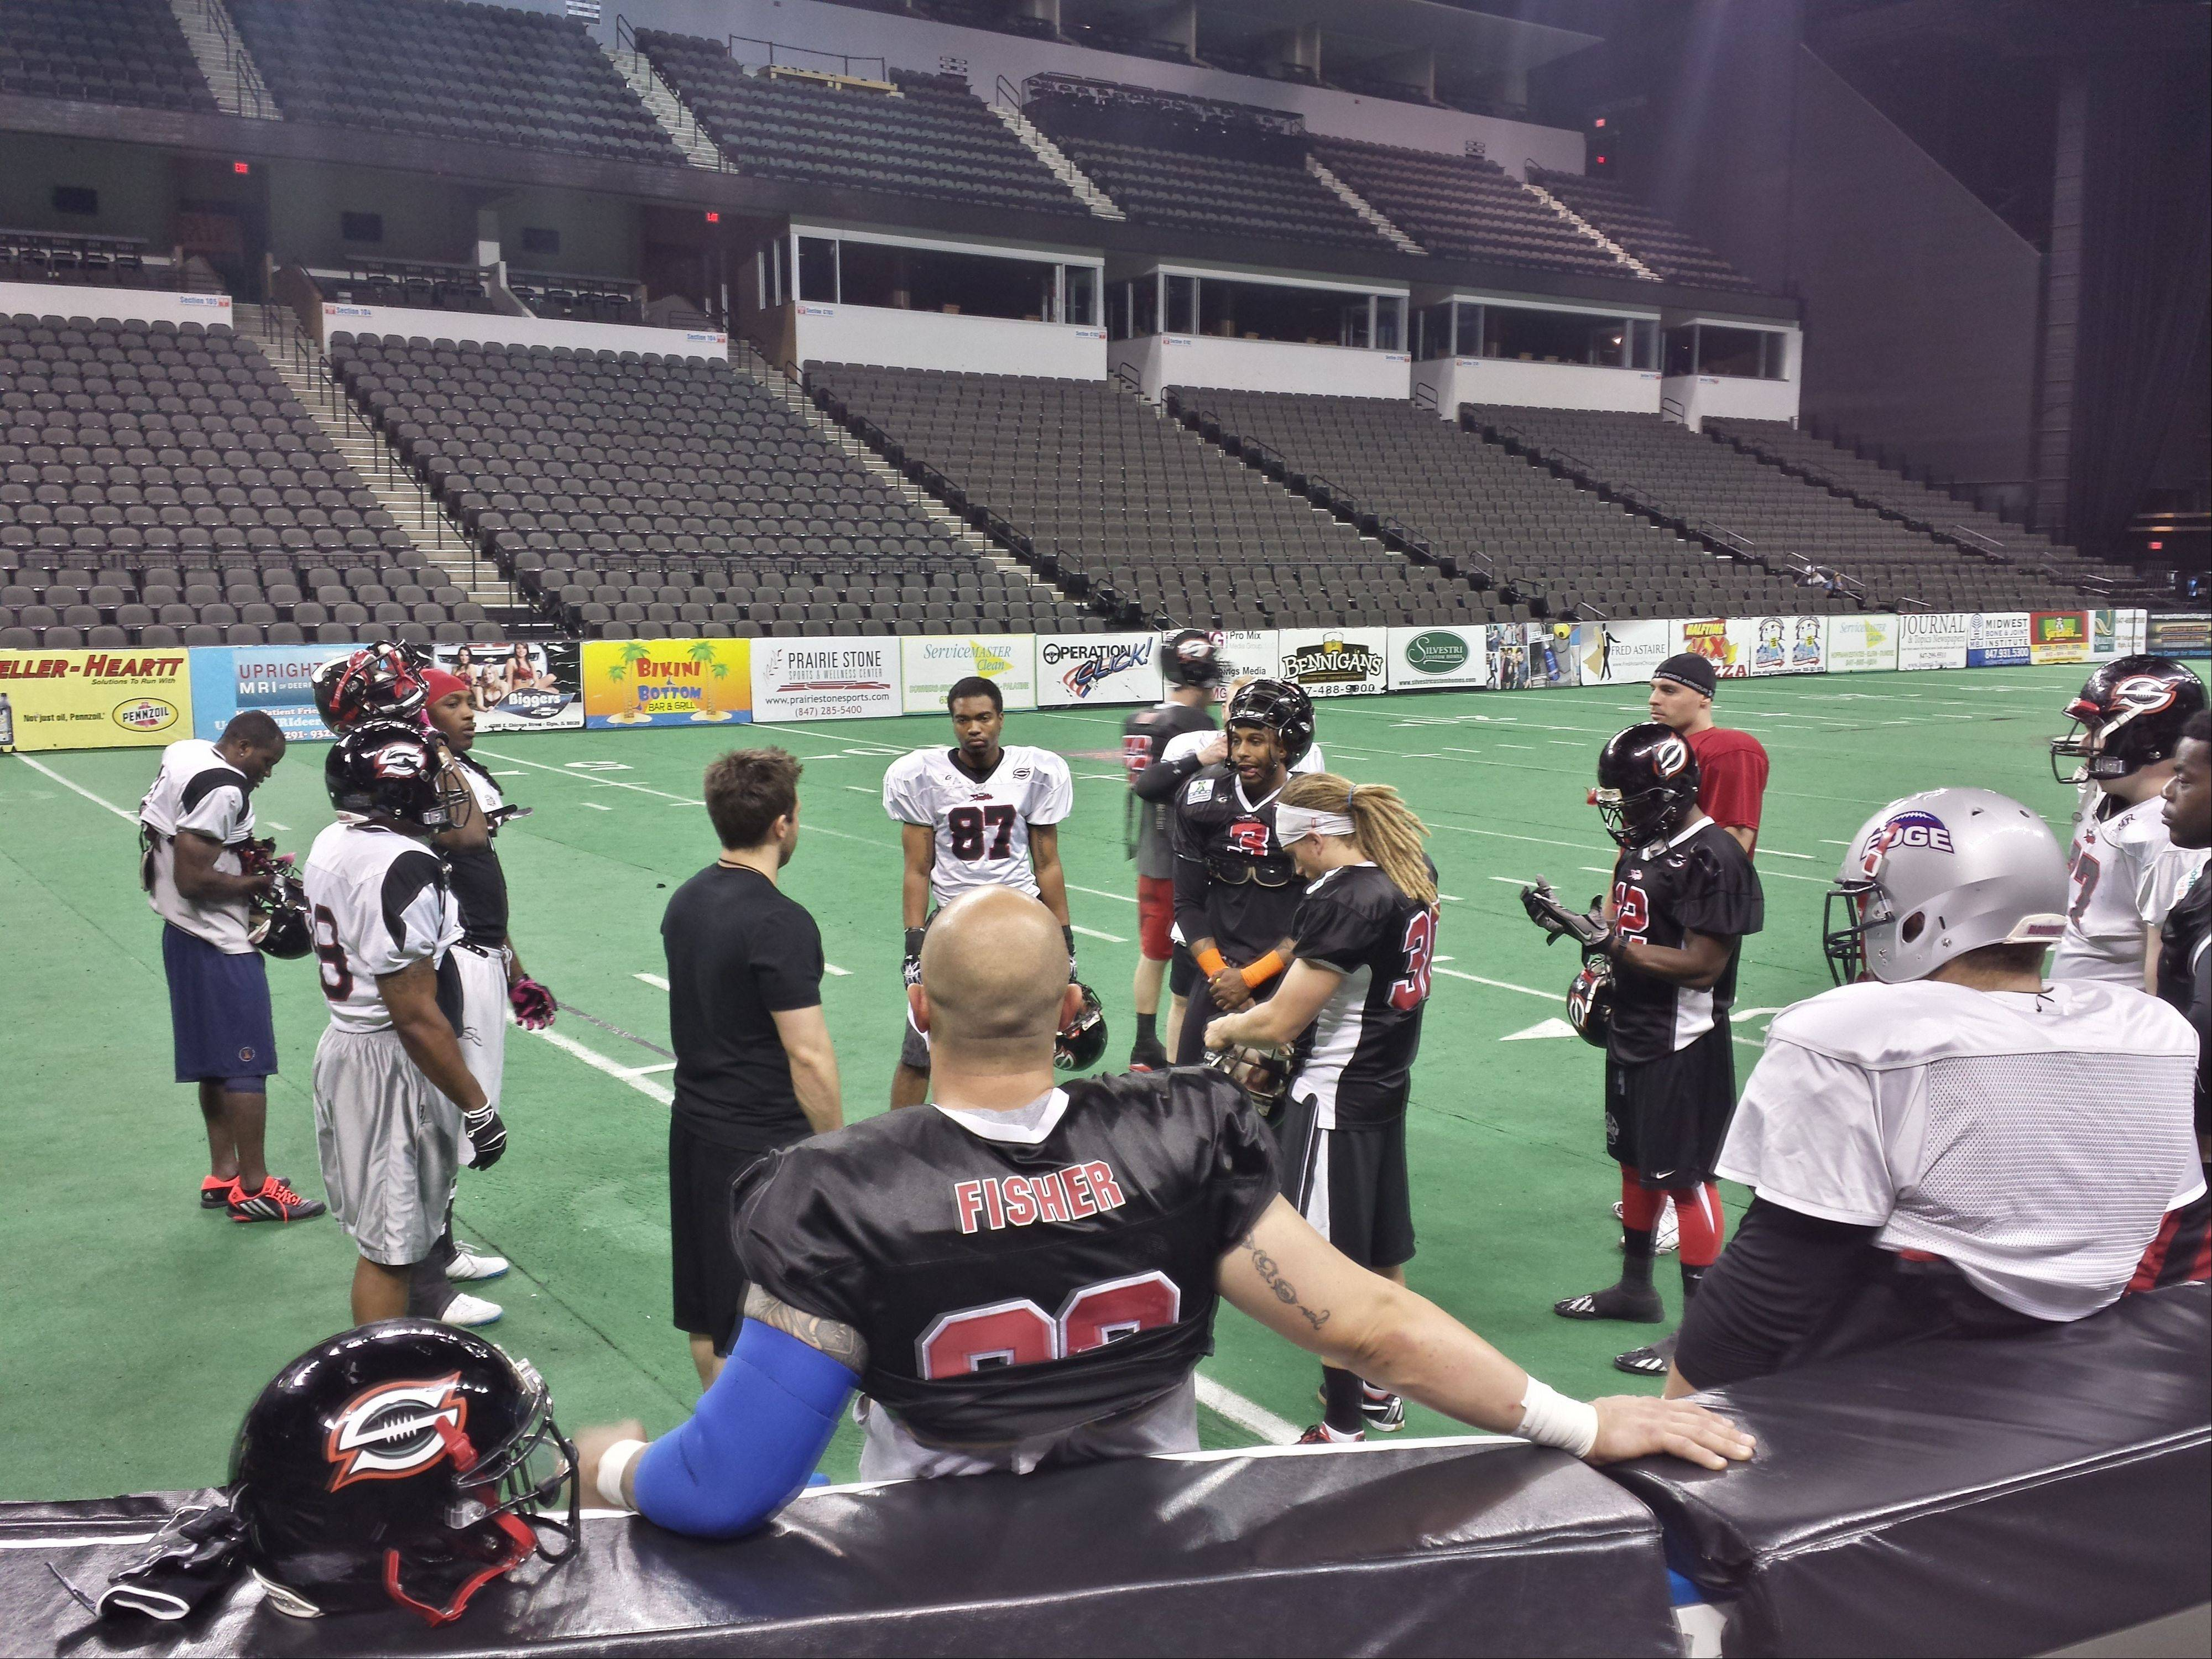 The Chicago Slaughter meet up and listen to what offensive coordinator Pat Pistorio has planned for practice before the team's last home game. The Slaughter host the Green Bay Blizzard on Friday at 7:35 p.m. at Sears Centre Arena.